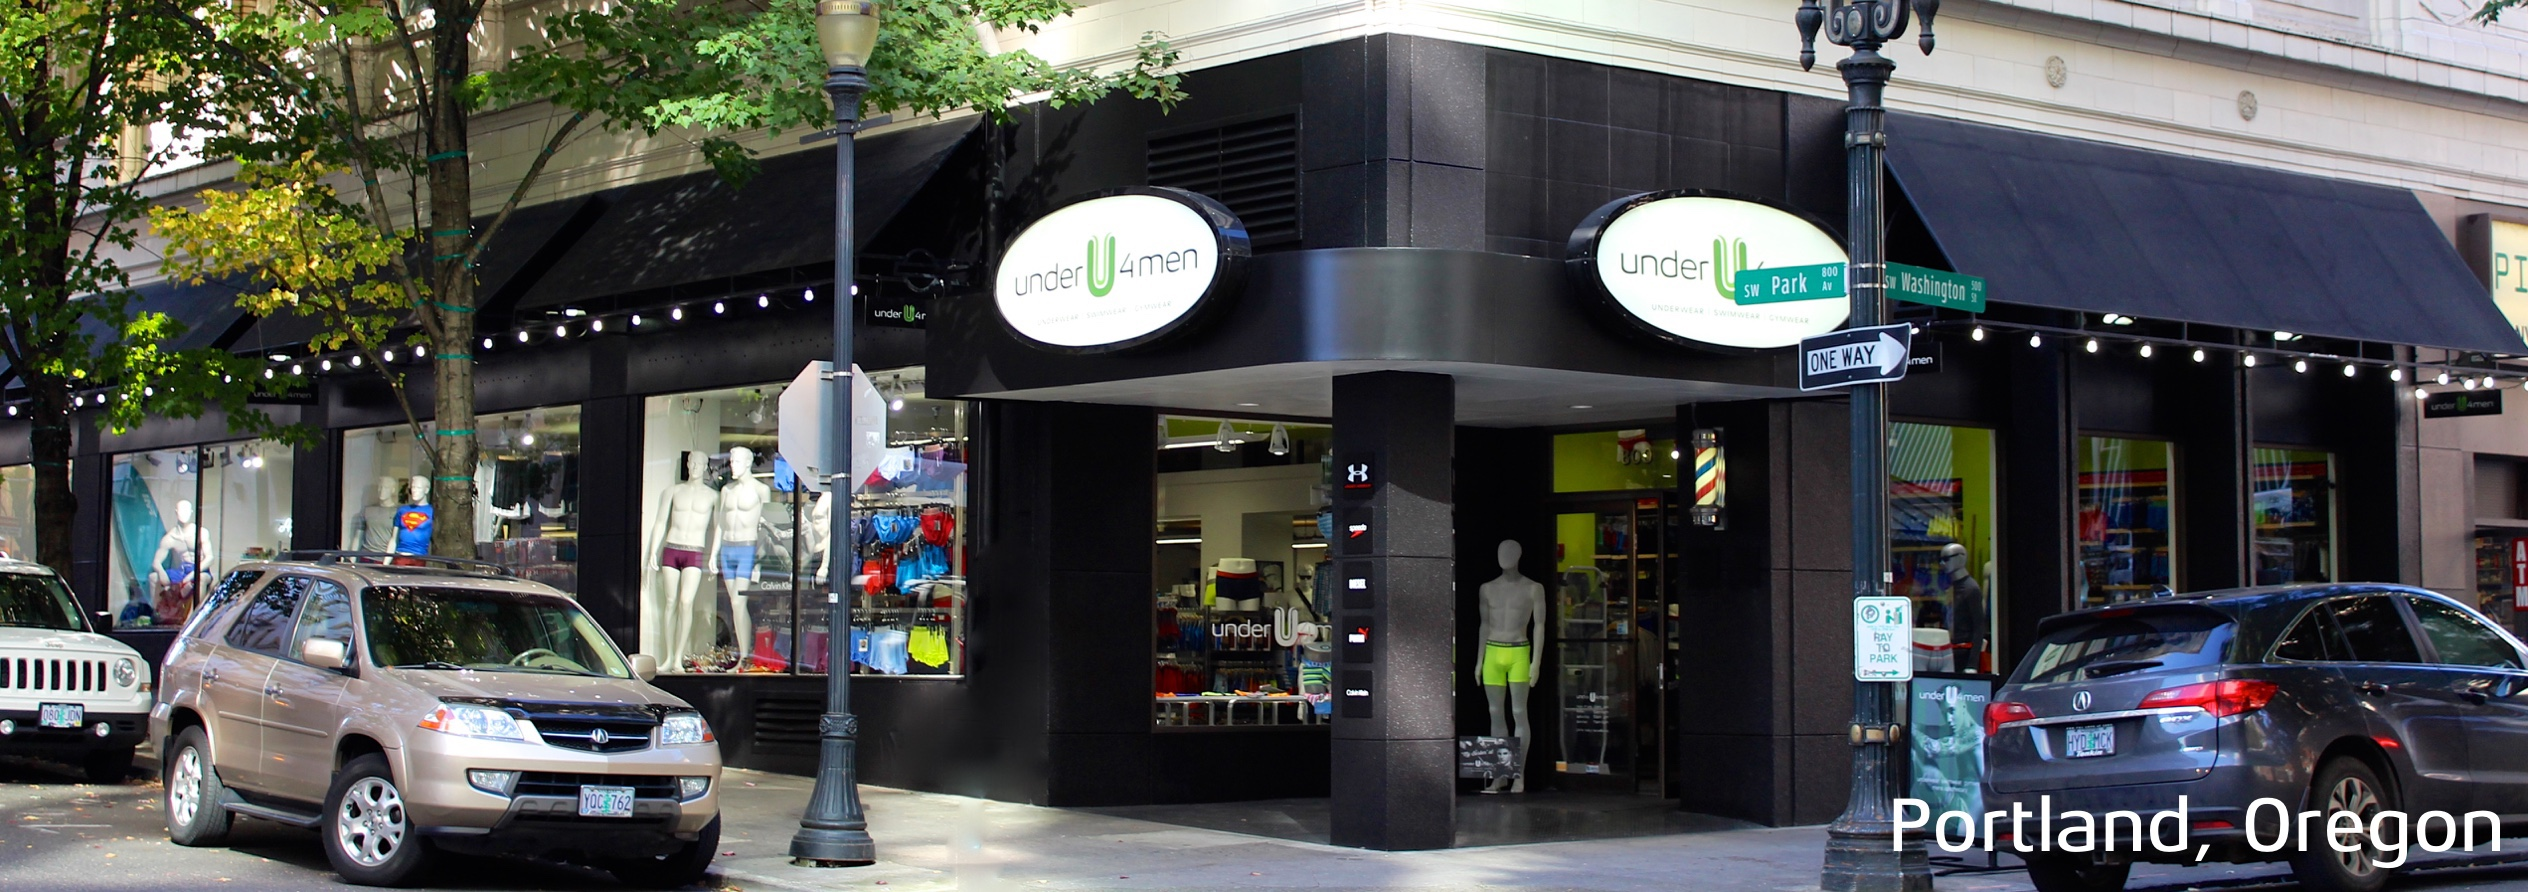 underu4men-portland-oregon-flagship-underwear-store